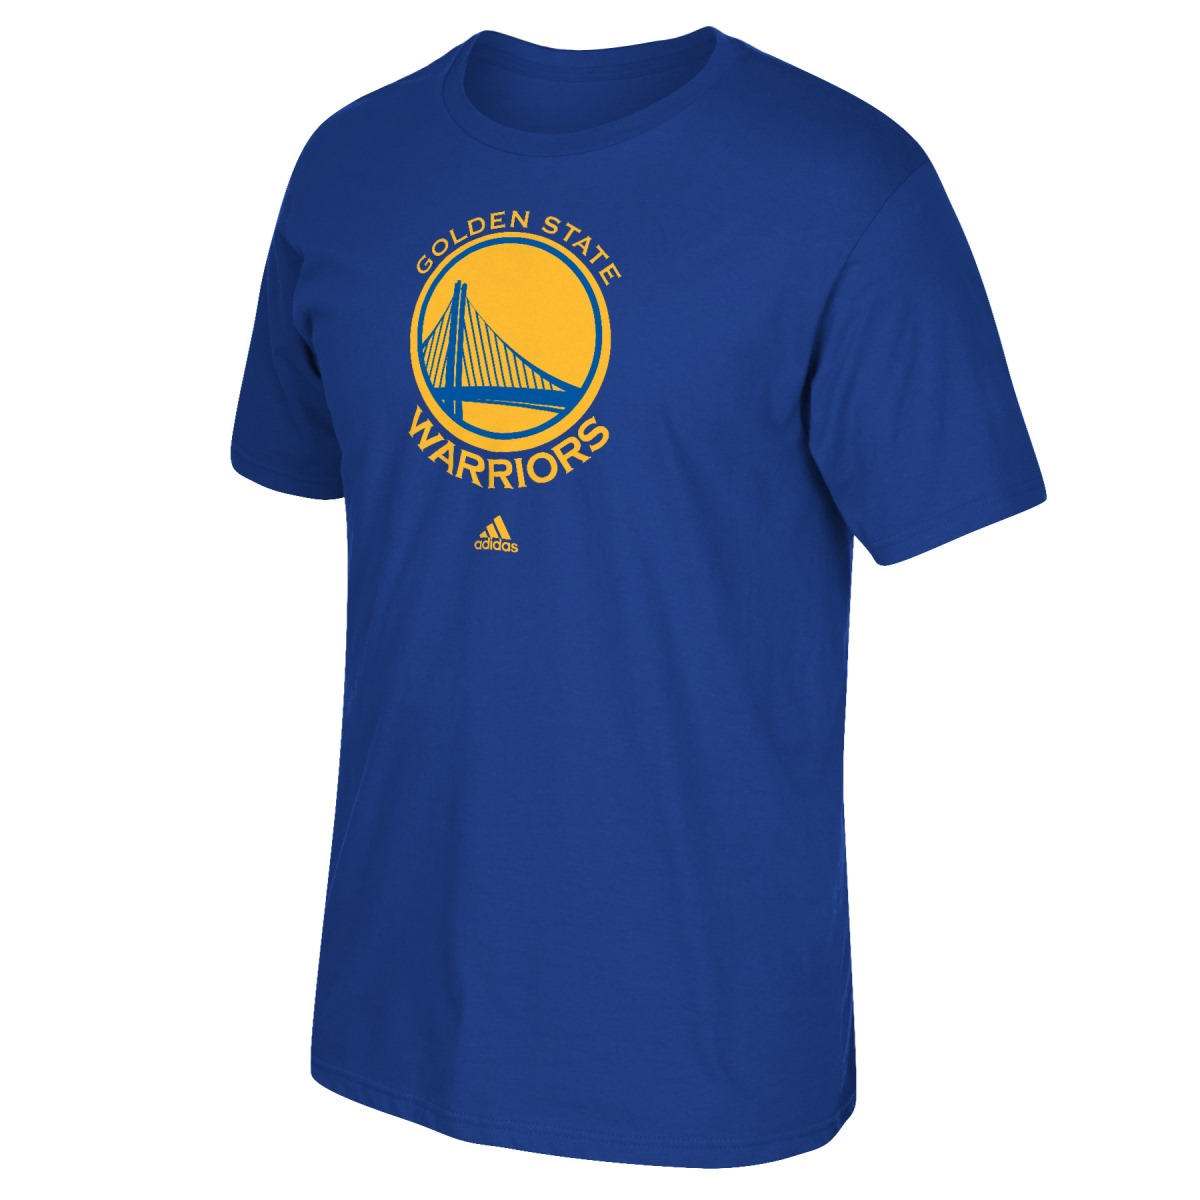 Golden State Warriors Adidas Blue Full Primary Logo T-Shirt